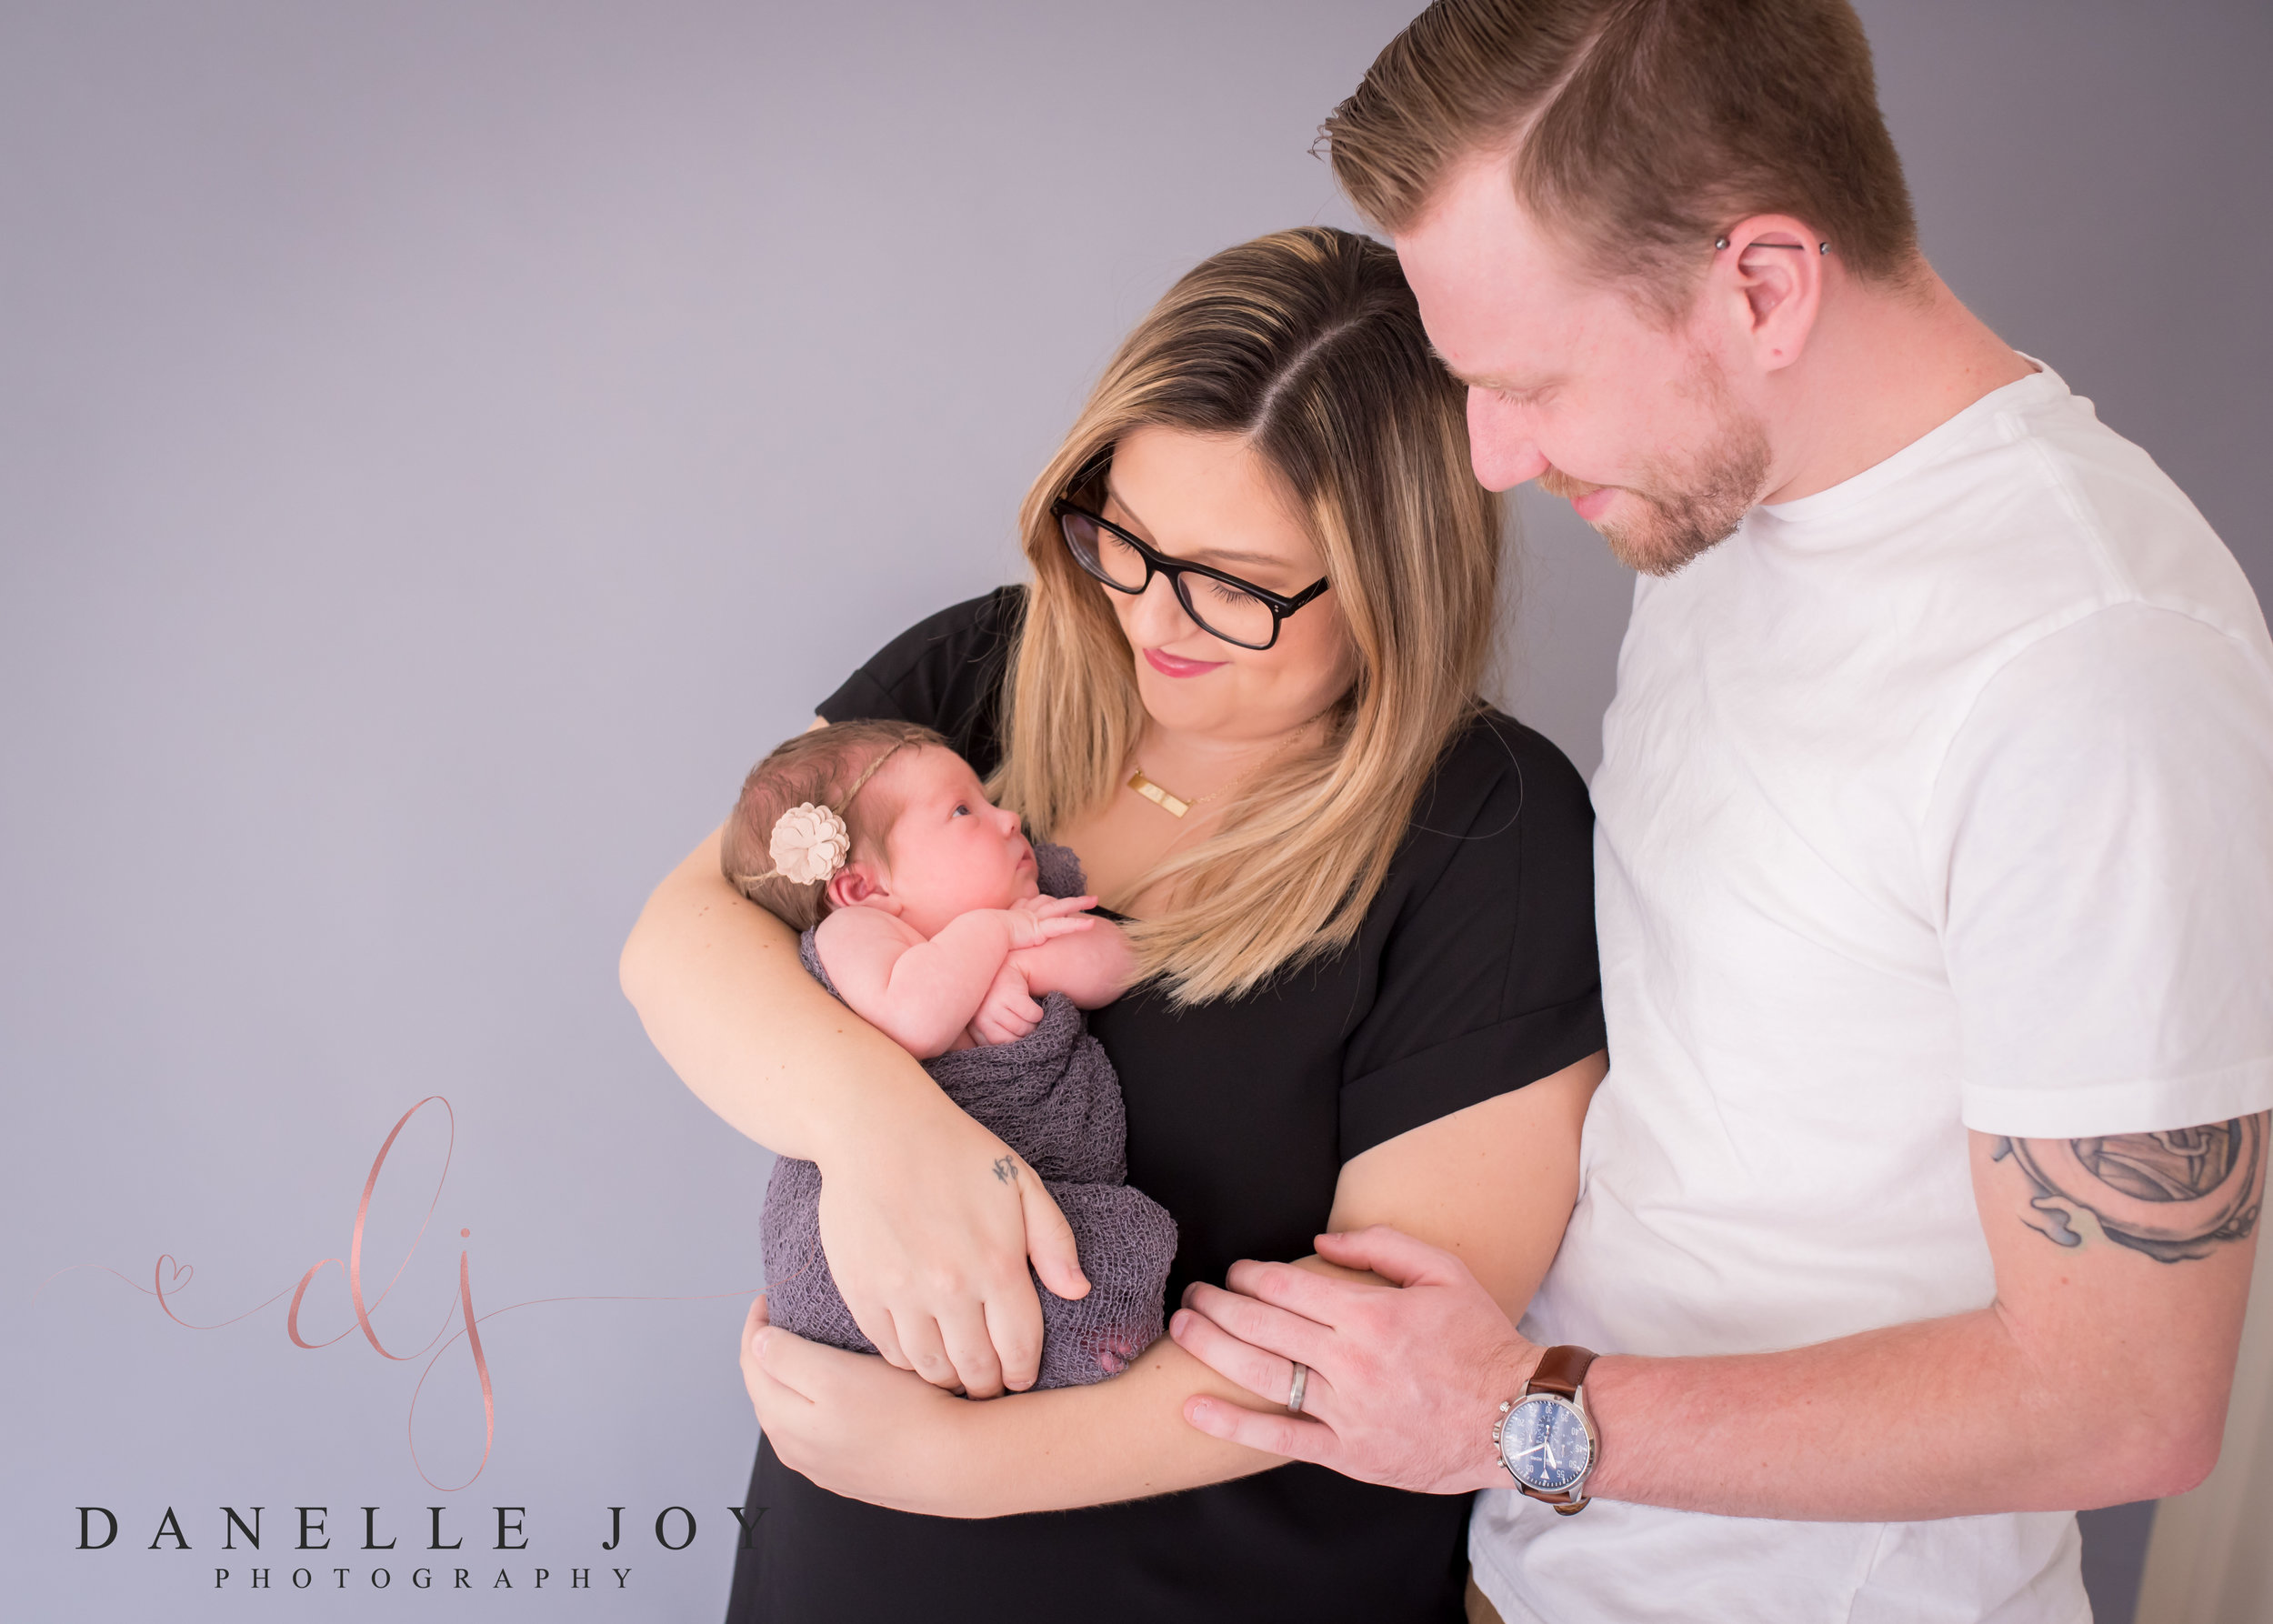 Cleveland Newborn Photographer, Family Photographer, Newborn Photography